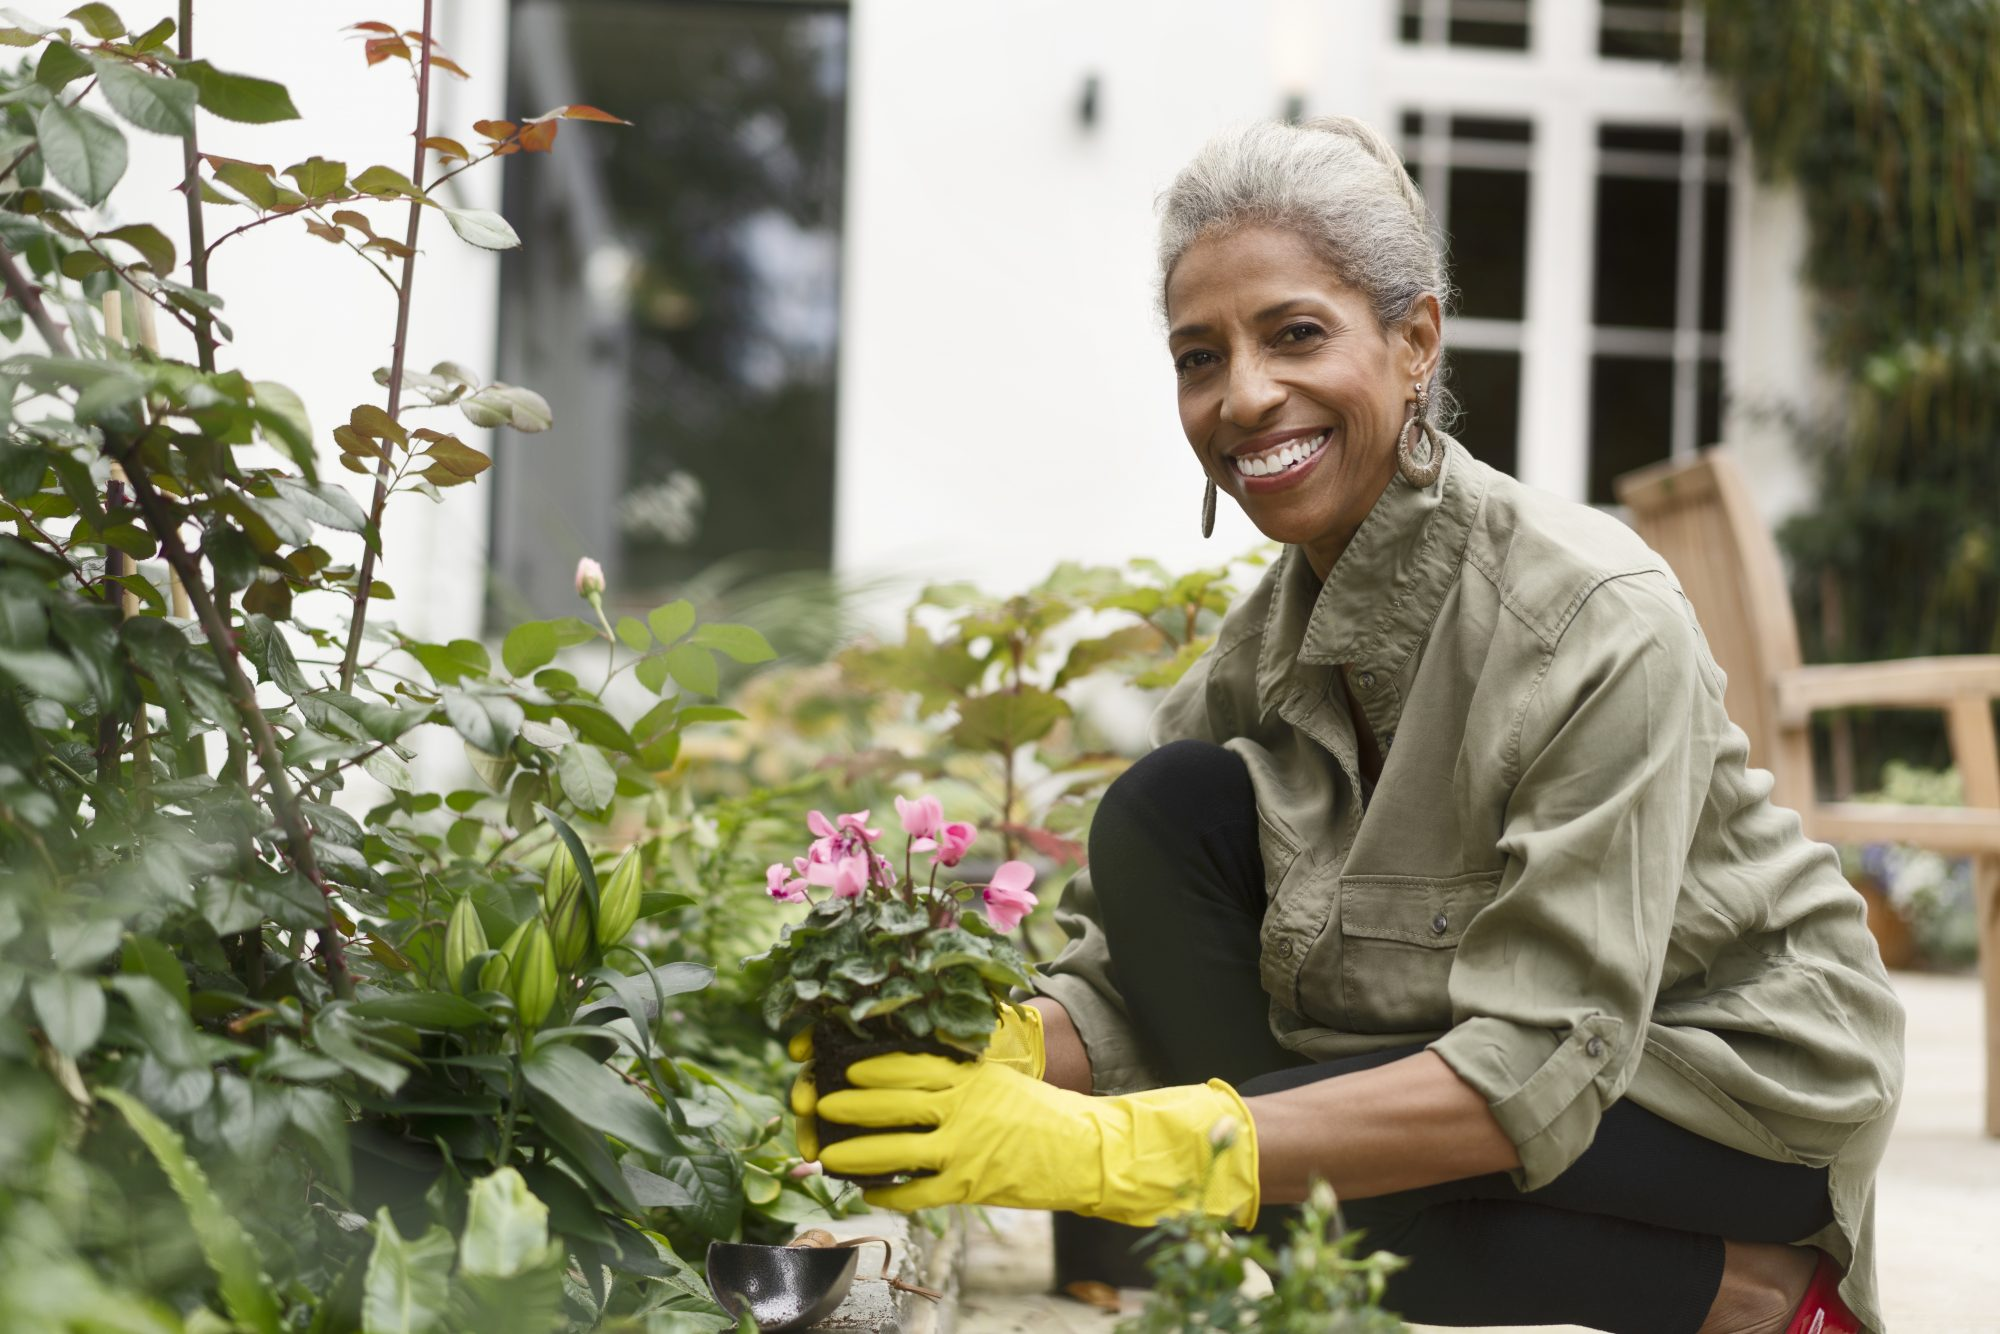 Experts Recommend Front Yard Gardens to Help Combat Loneliness